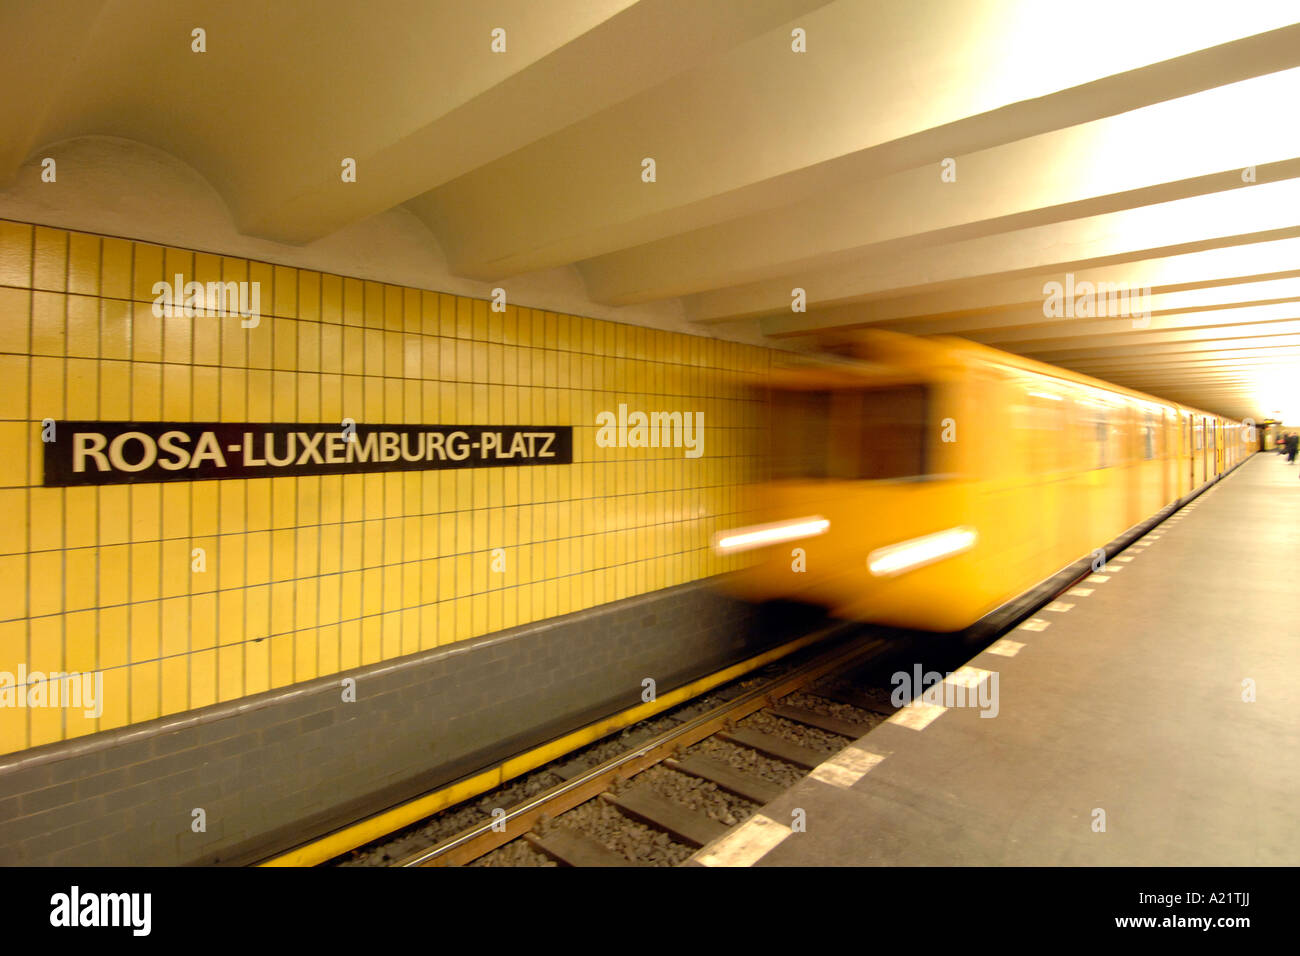 A train pulls into the platform of the Rosa Luxemburg Platz U bahn station in East Berlin. - Stock Image